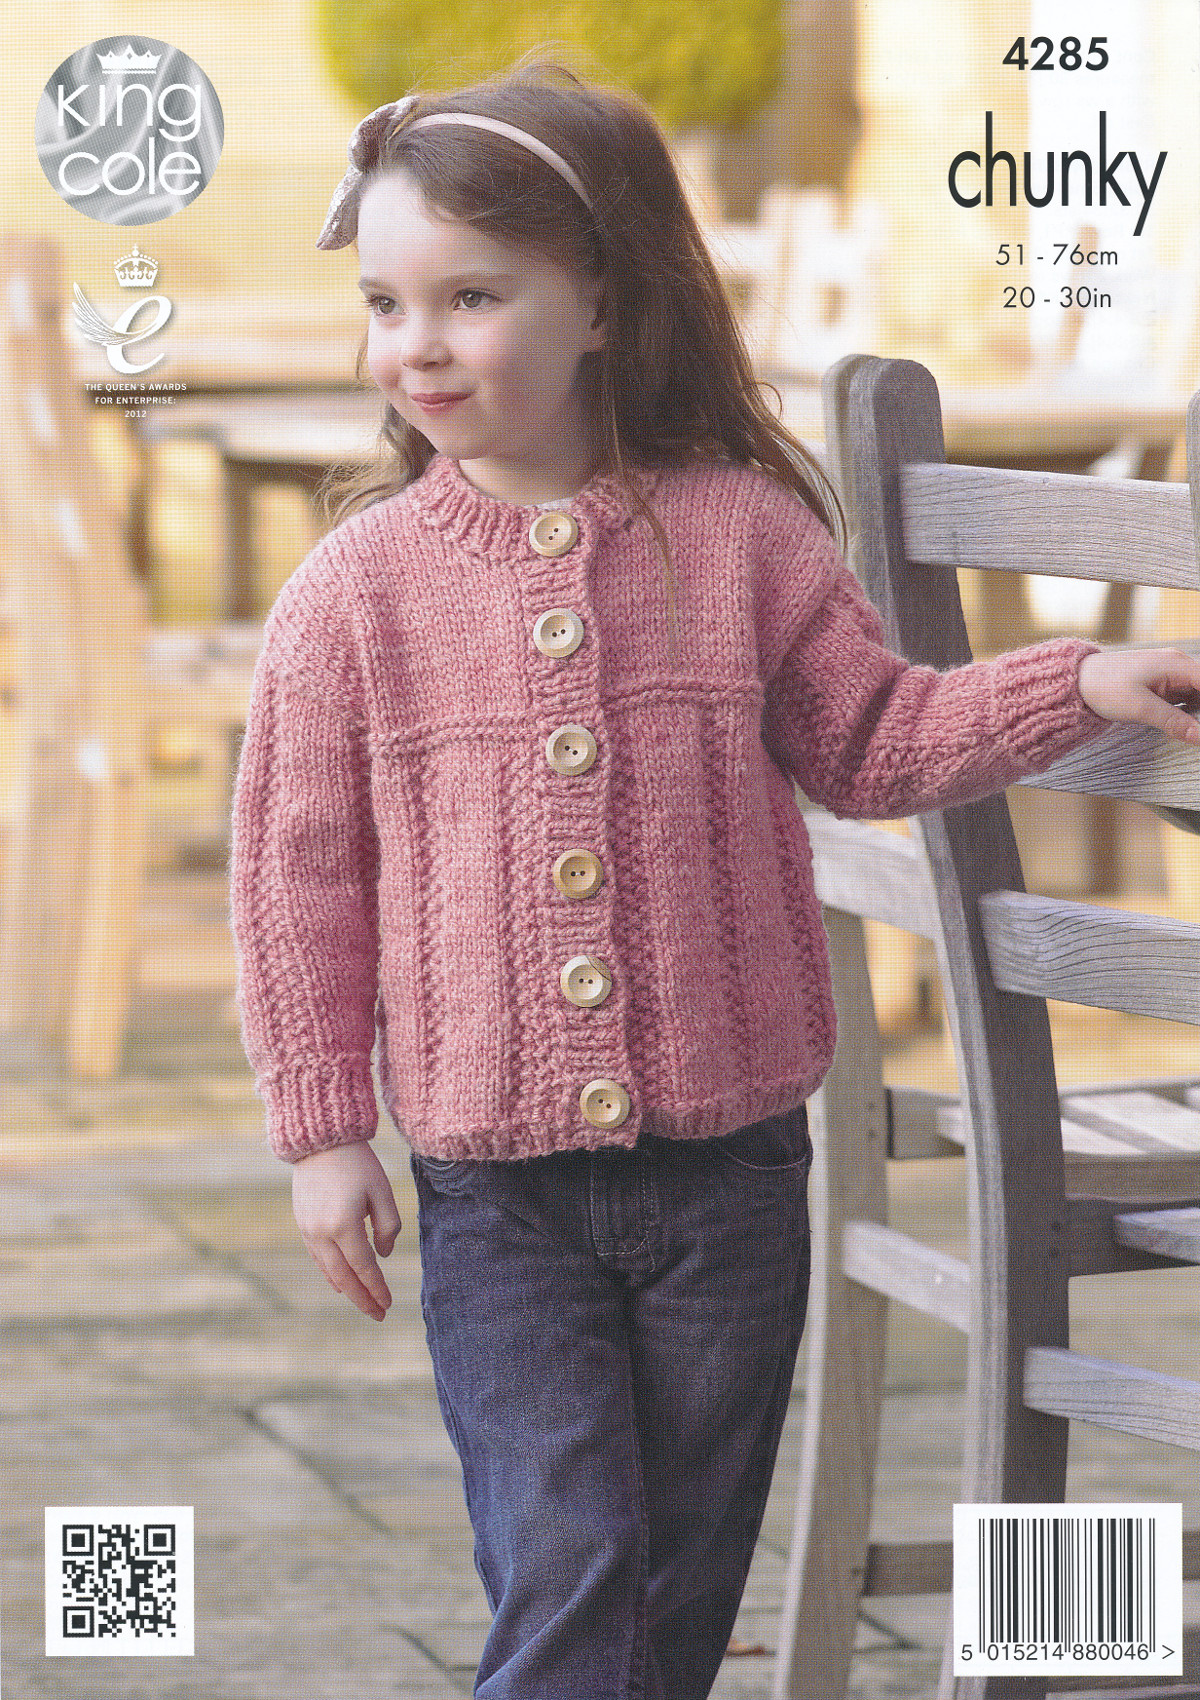 Chunky Cardigan Knitting Pattern - English Sweater Vest